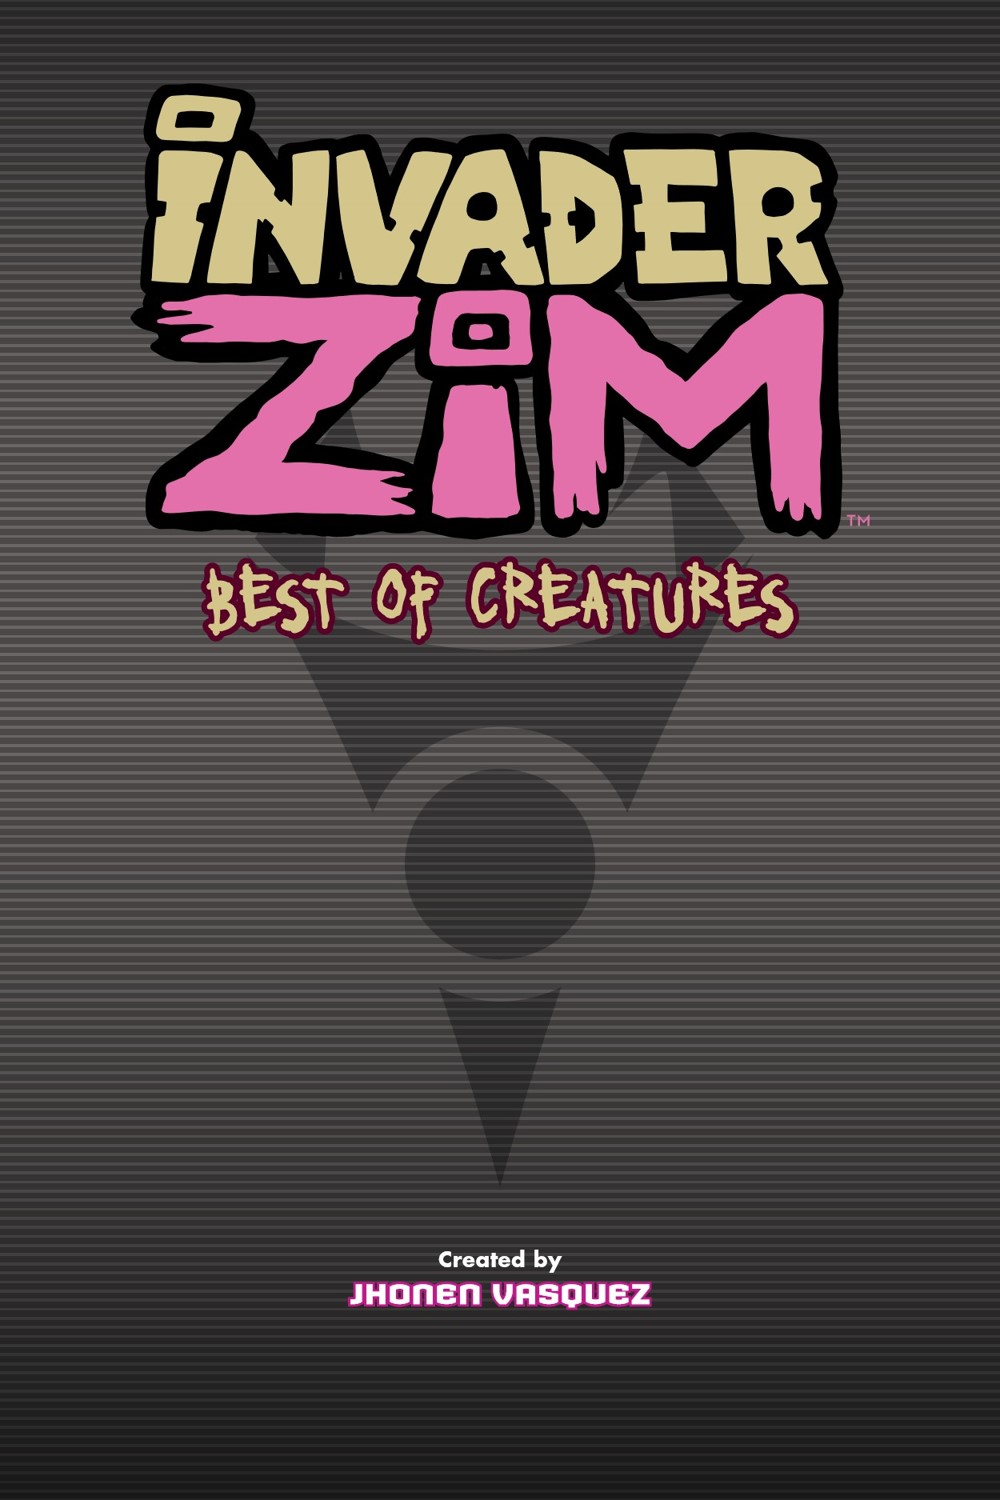 INVADERZIM-BEST-OF-CREATURES-REFERENCE-002 ComicList Previews: INVADER ZIM BEST OF CREATURES VOLUME 1 TP